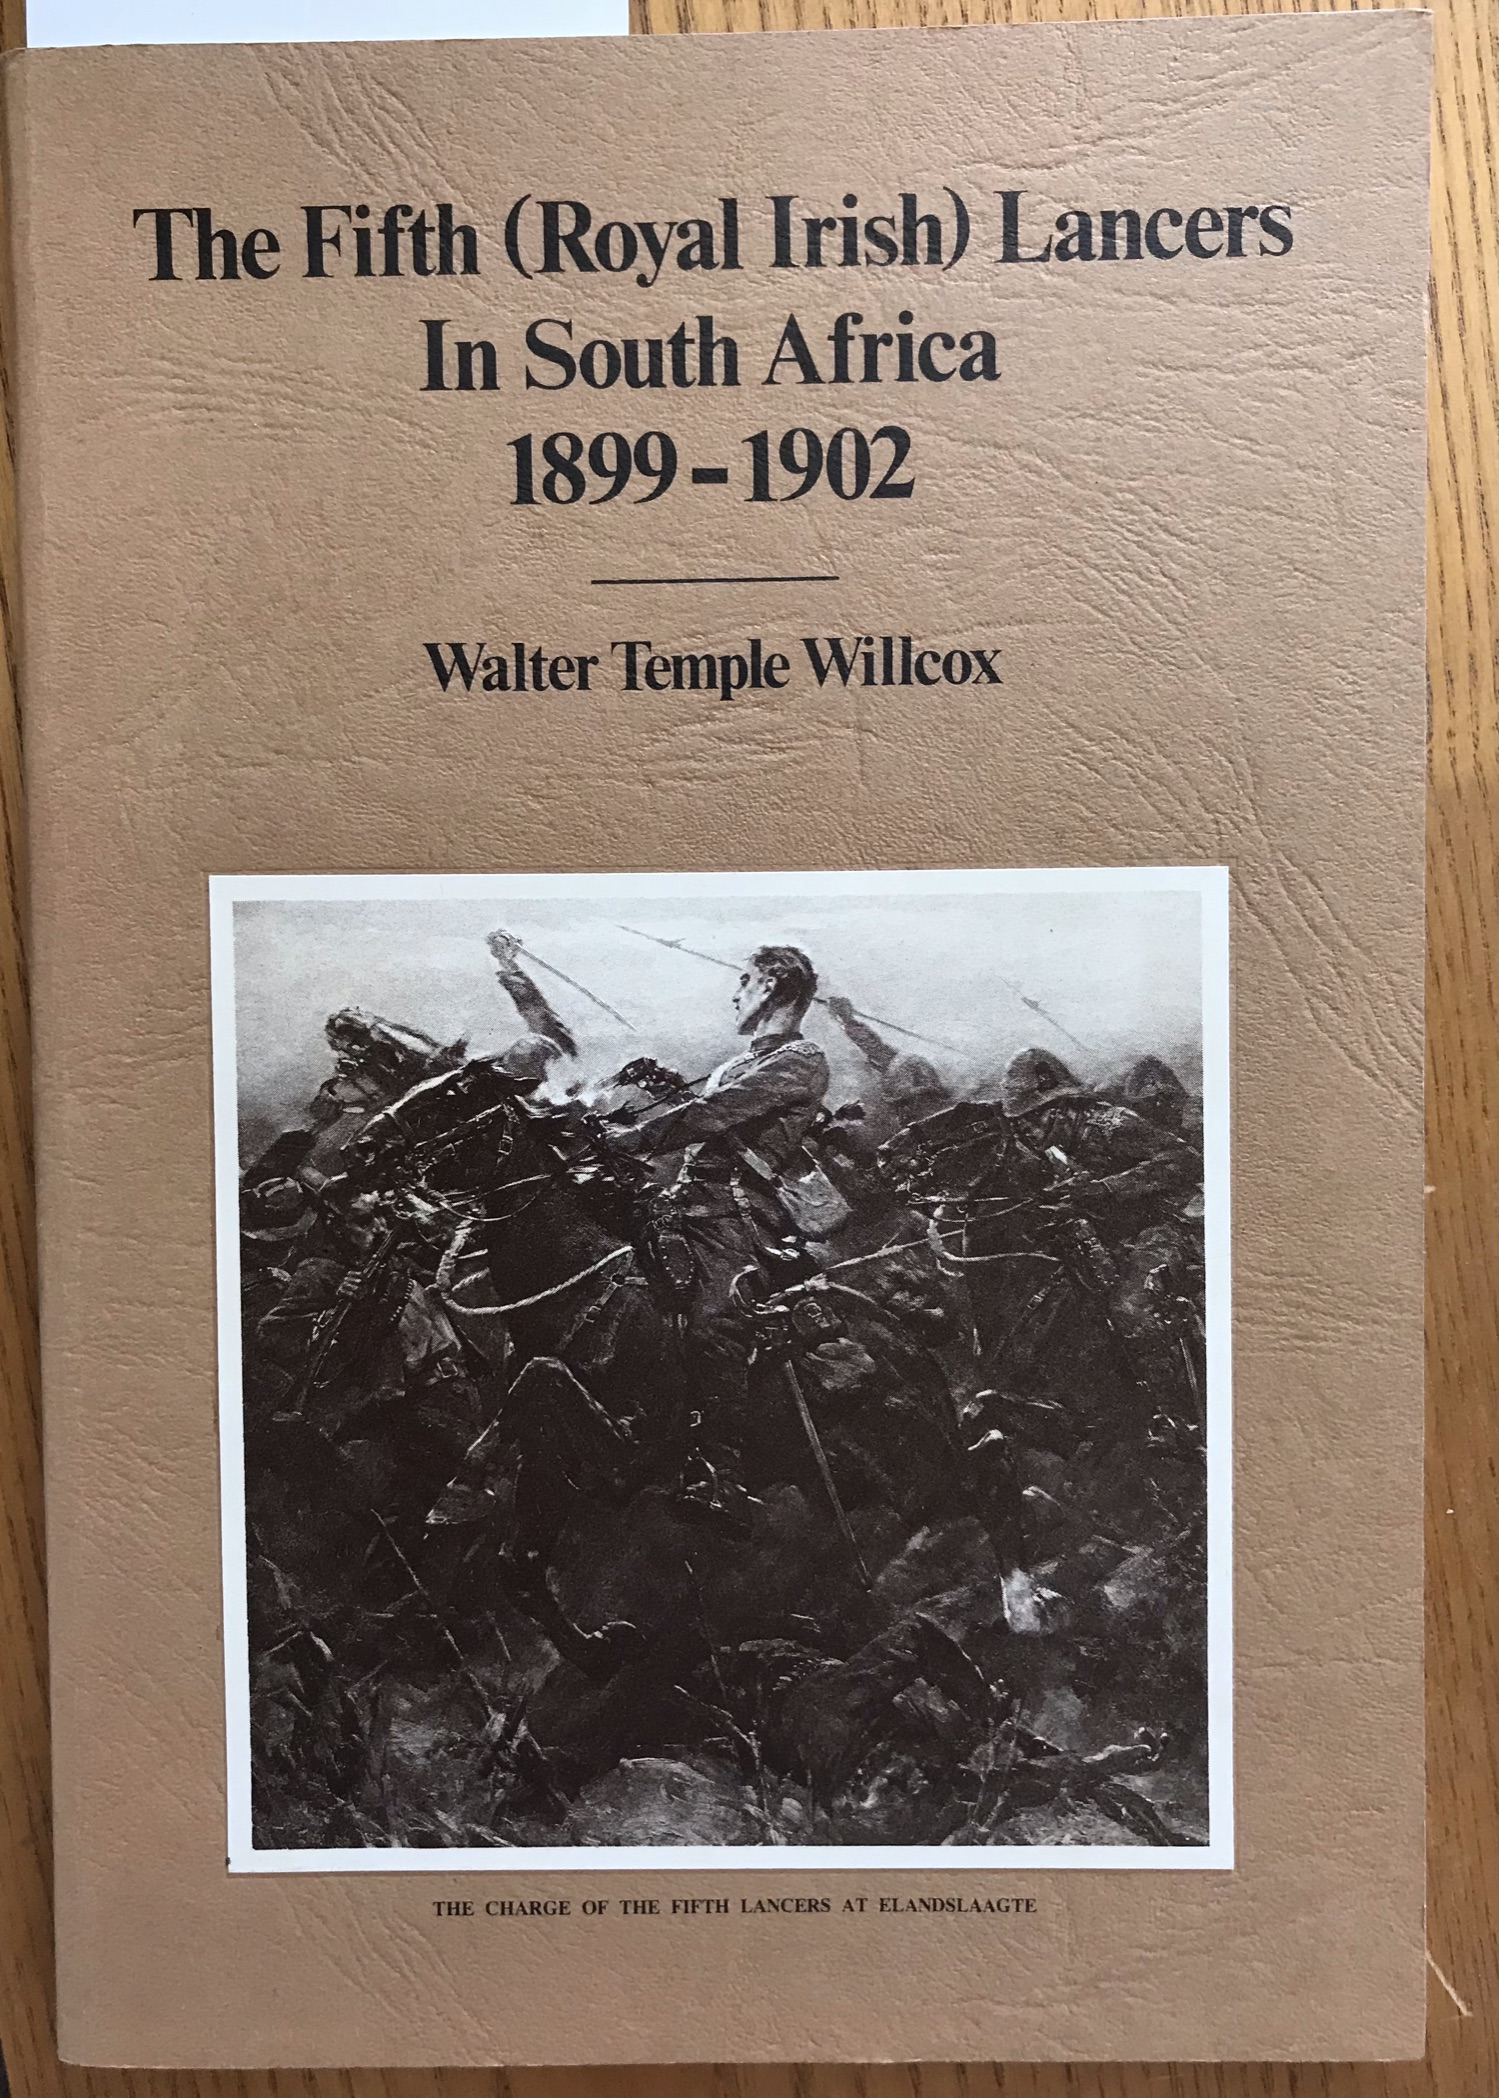 The Fifth (Royal Irish) Lancers in South Africa 1899 - 1902 by Willcox, Walter Temple, and printed